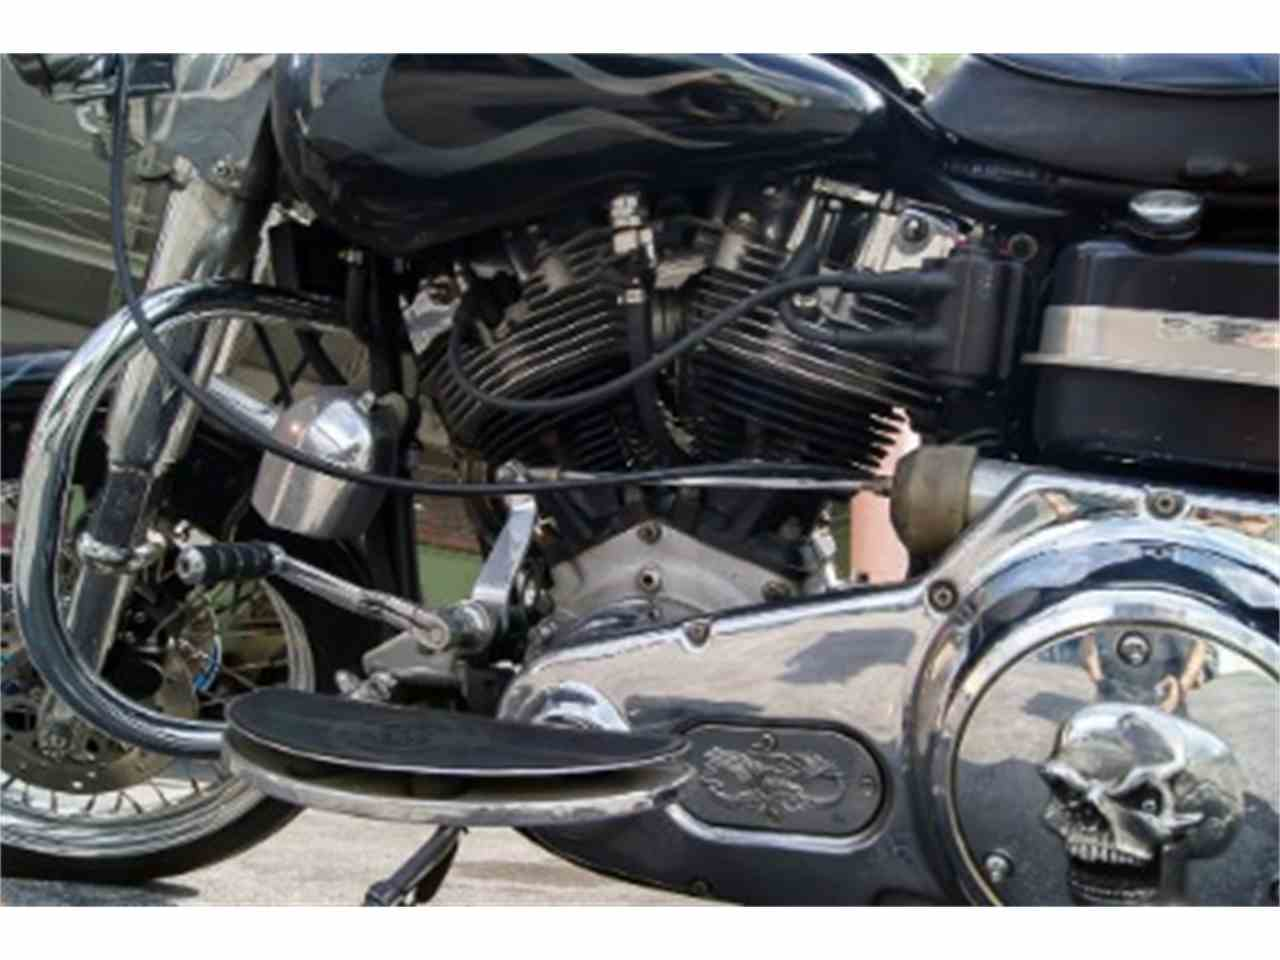 Large Picture of '82 HARLEY DAVIDSON Harley Davidson - $8,500.00 Offered by Sobe Classics - FVQR